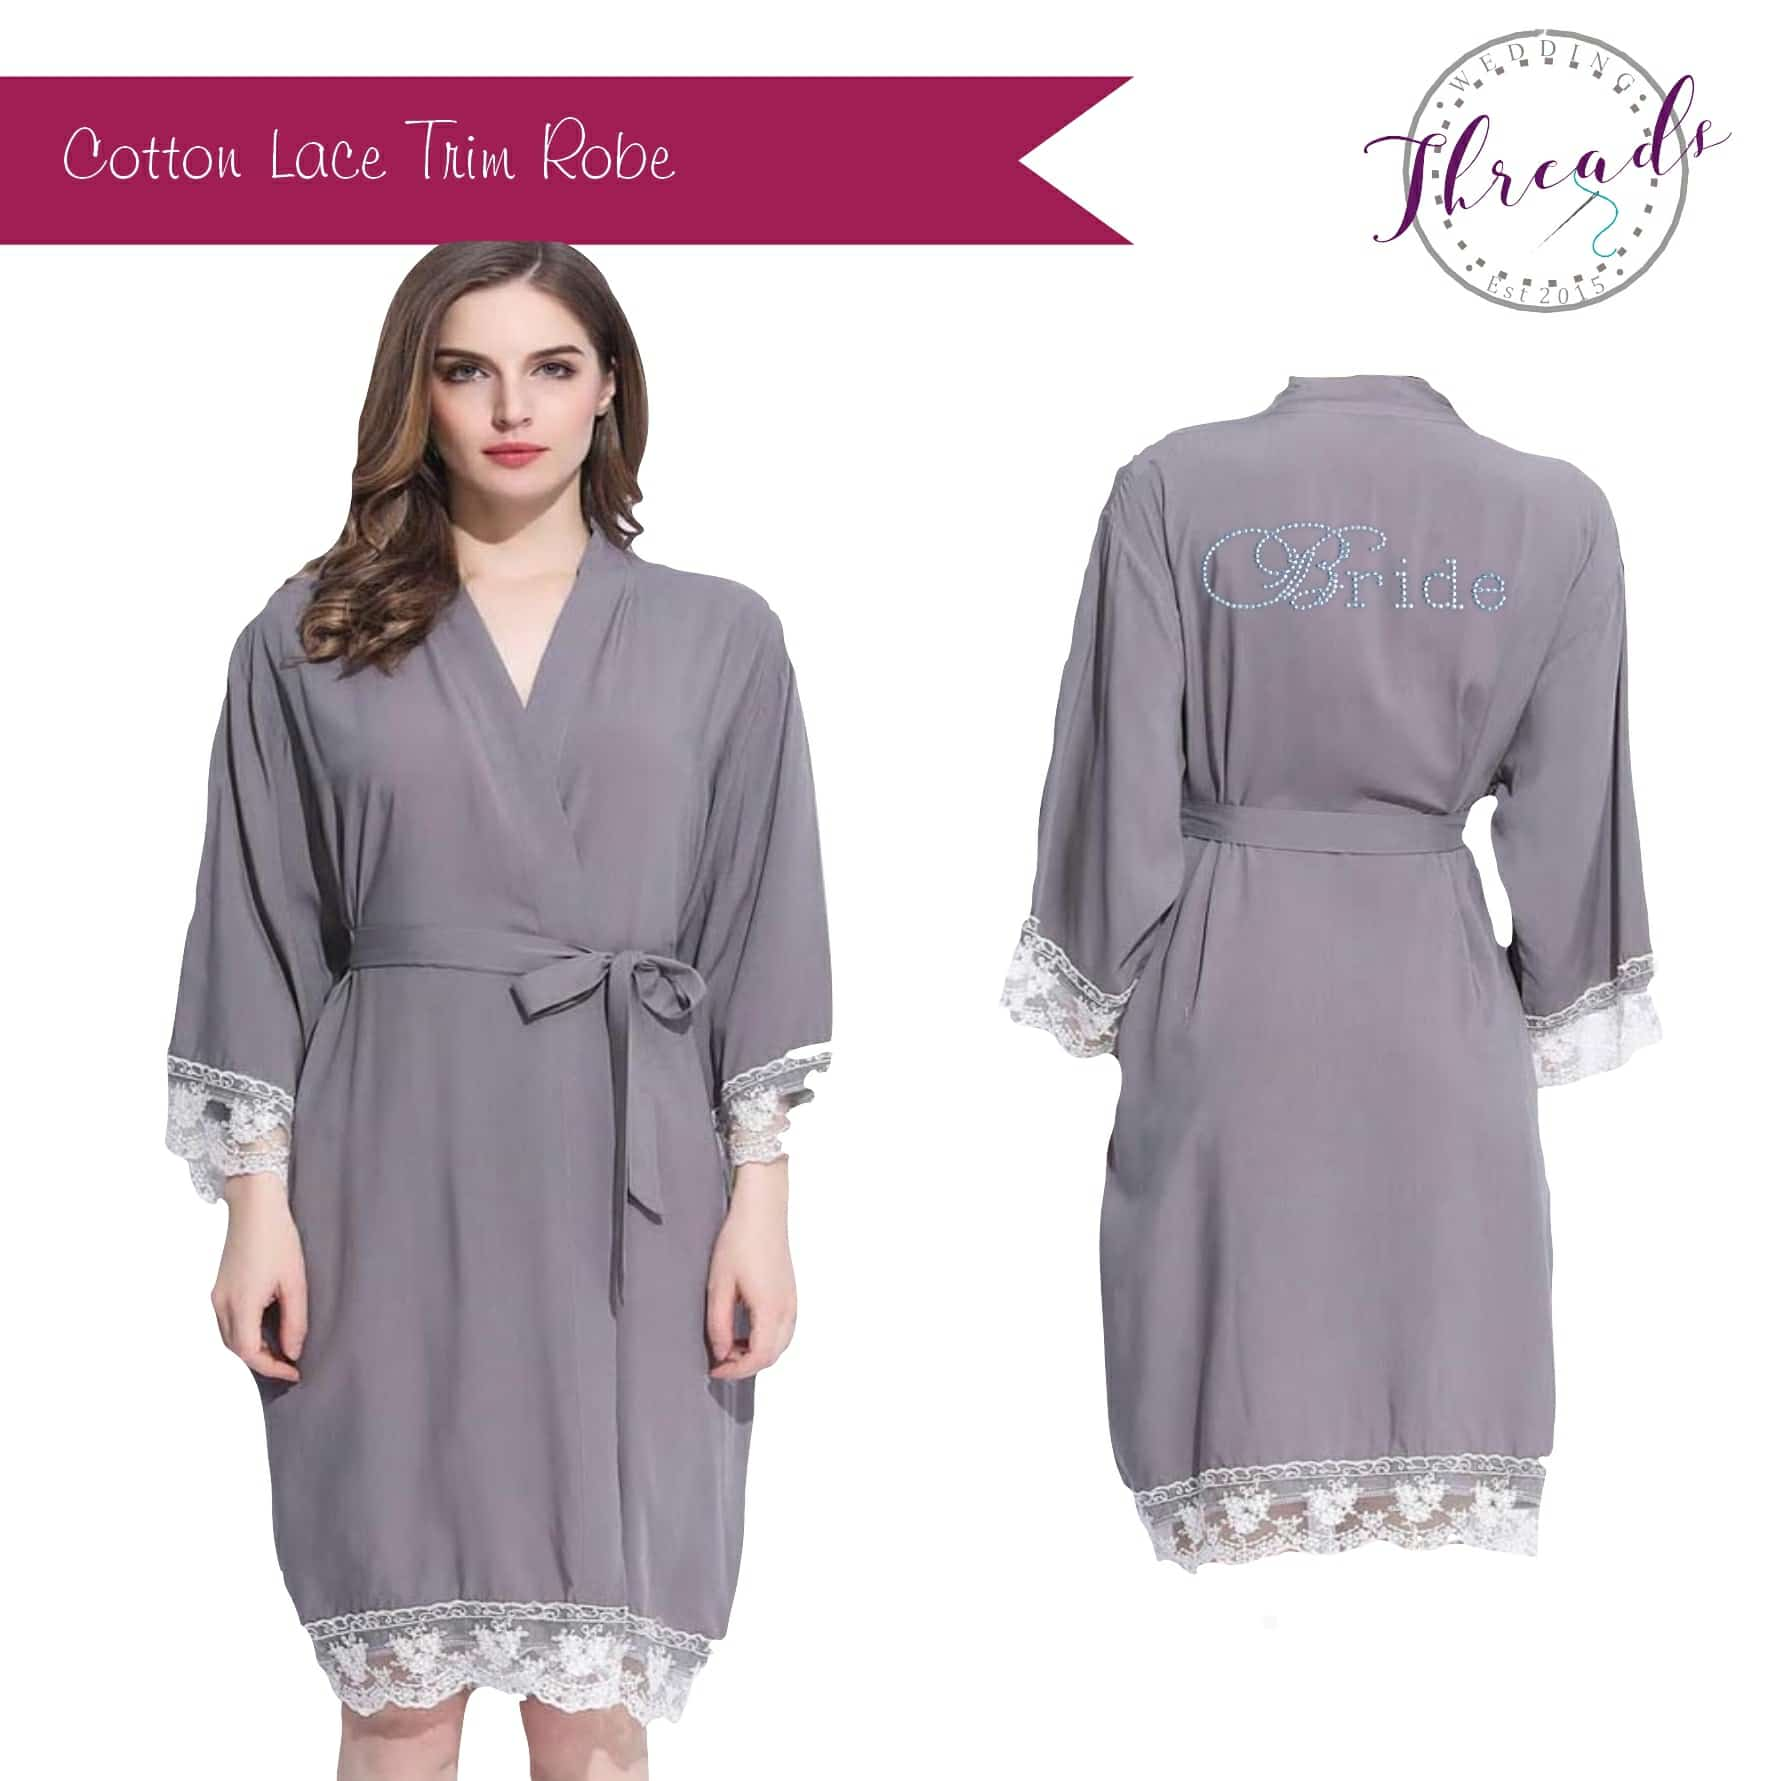 Lace cuff cotton dressing gown 956f50dbf851